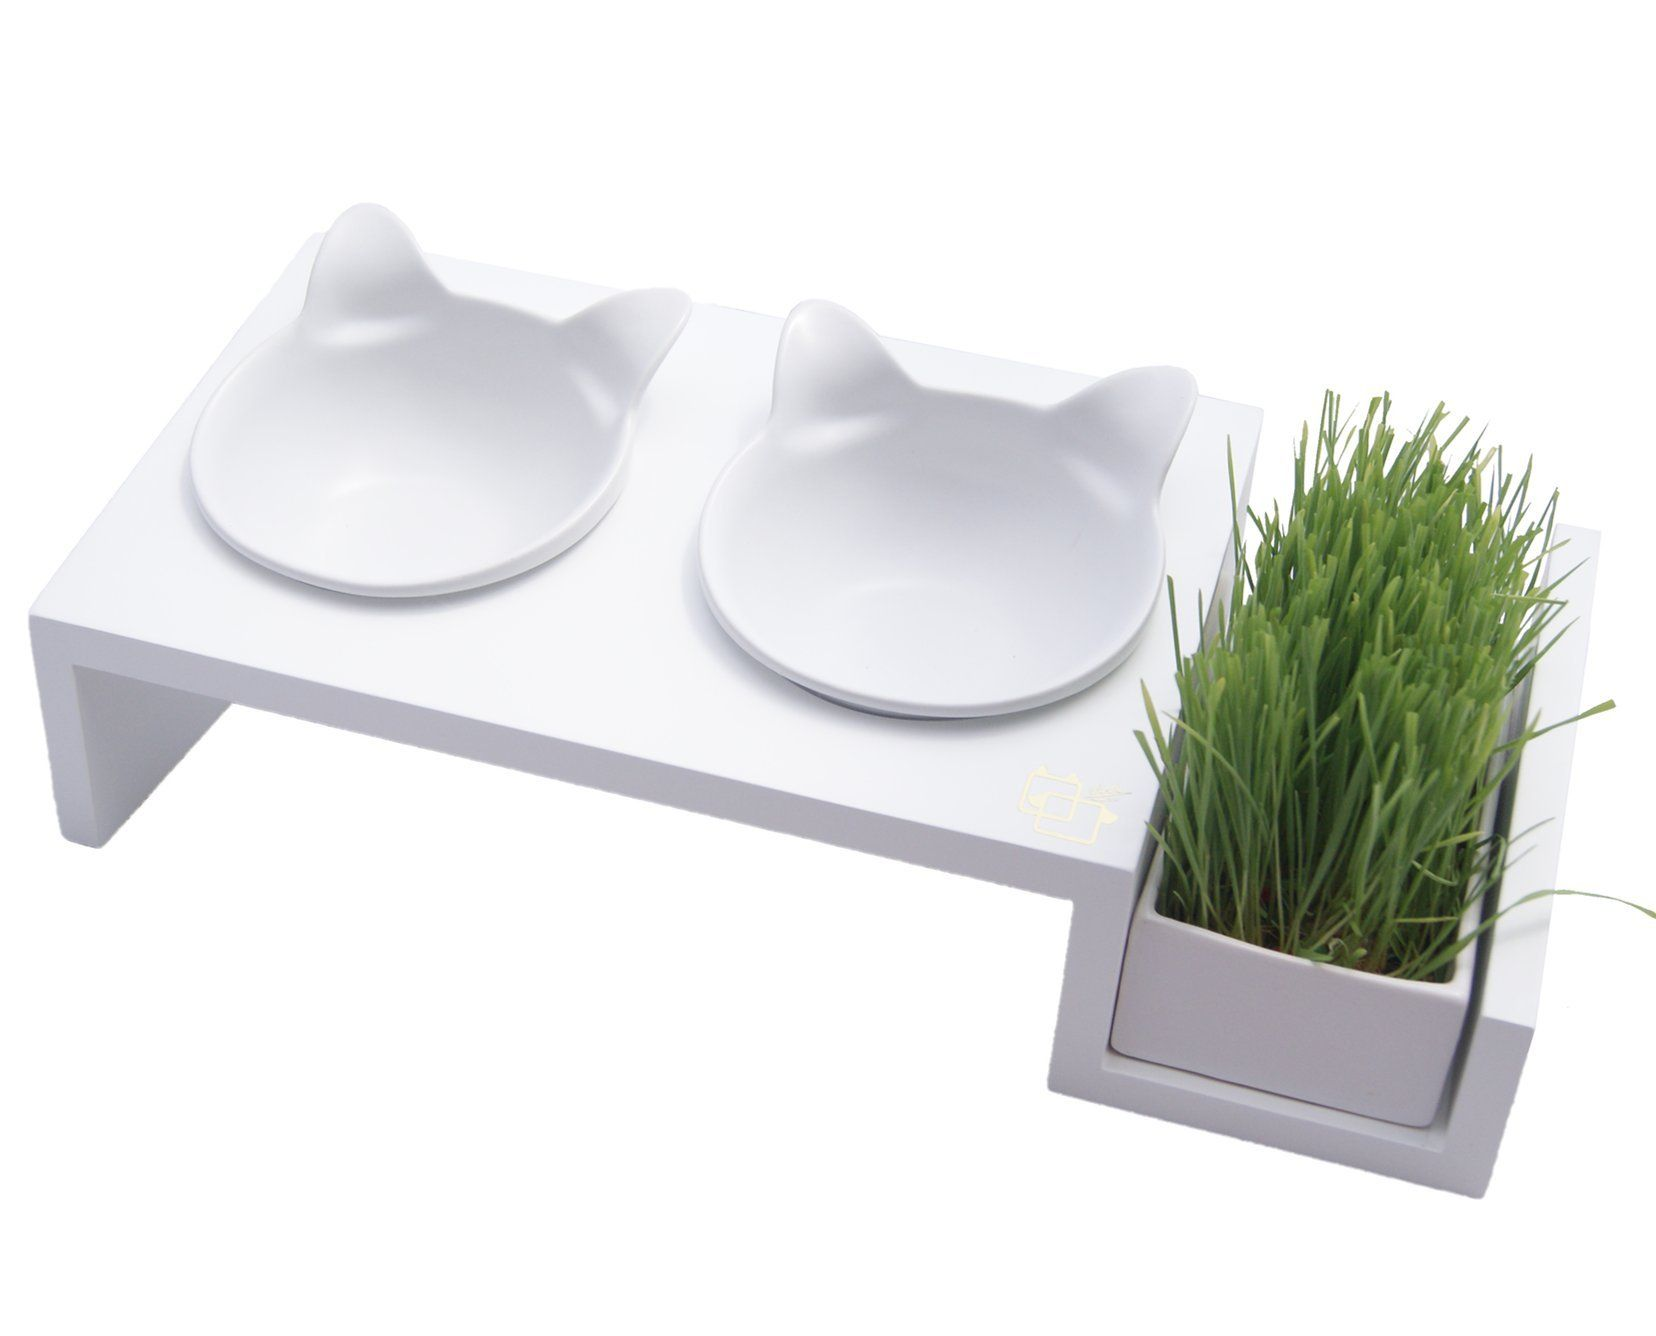 bowls cat daisybooandco pet products feeder copy floor of small dog raised com elevated au